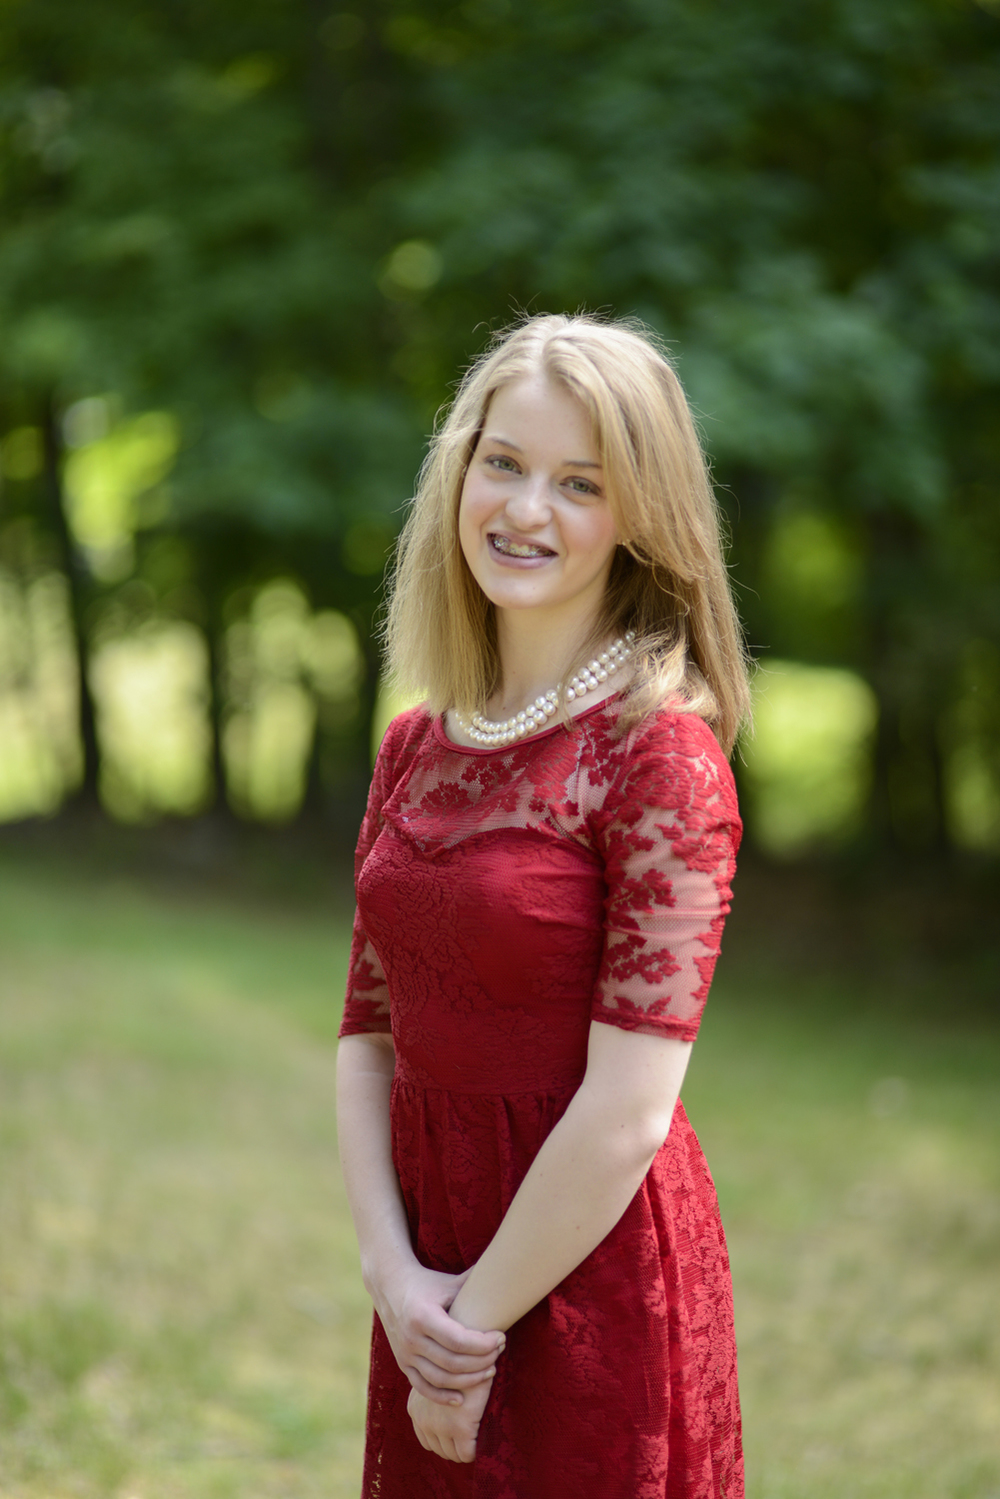 High school senior portraits in bold red dress | Maria Grace Photography